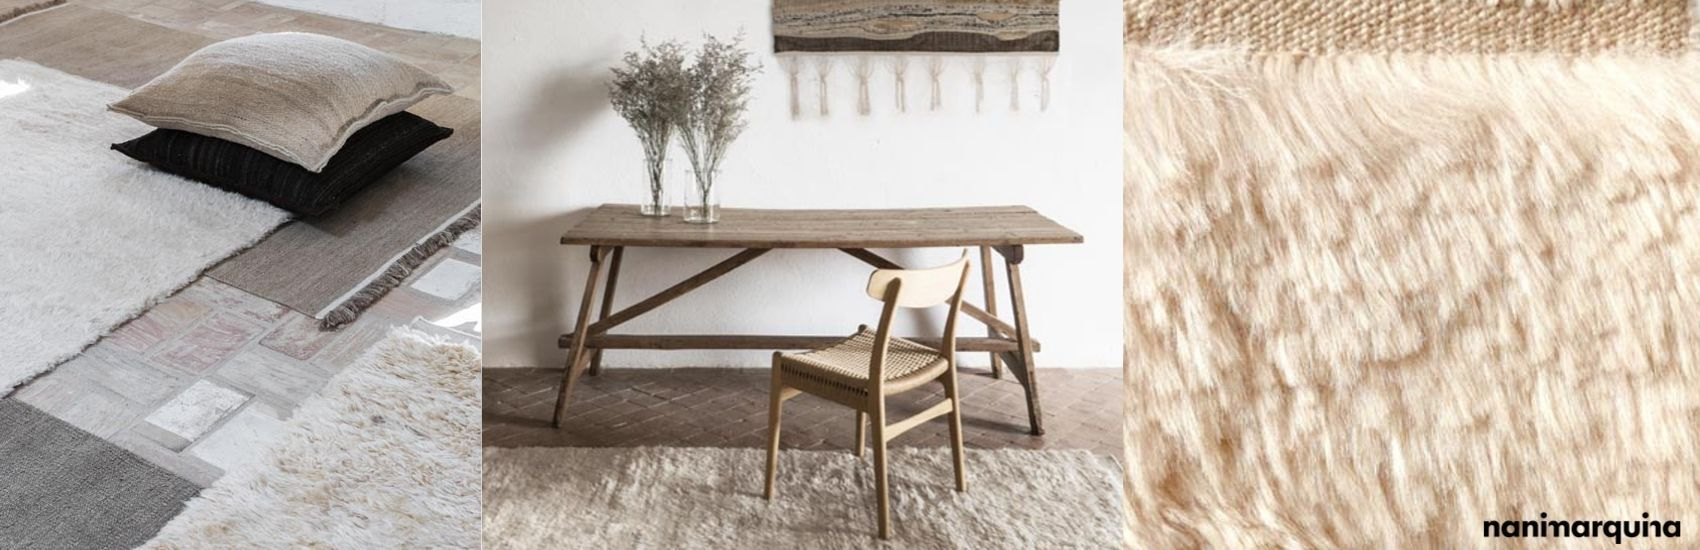 Shop Nanimarquina Rugs at Palette and Parlor